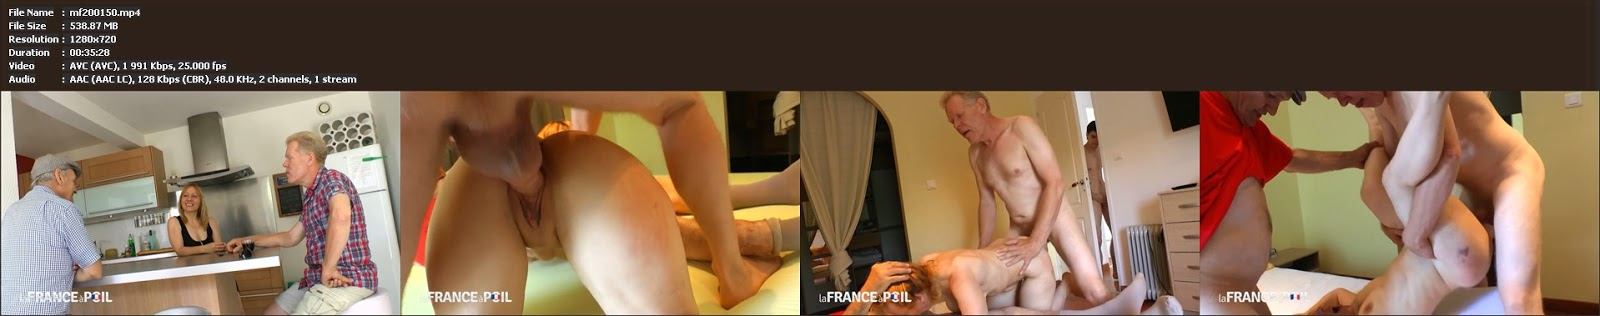 anal archive matur franch